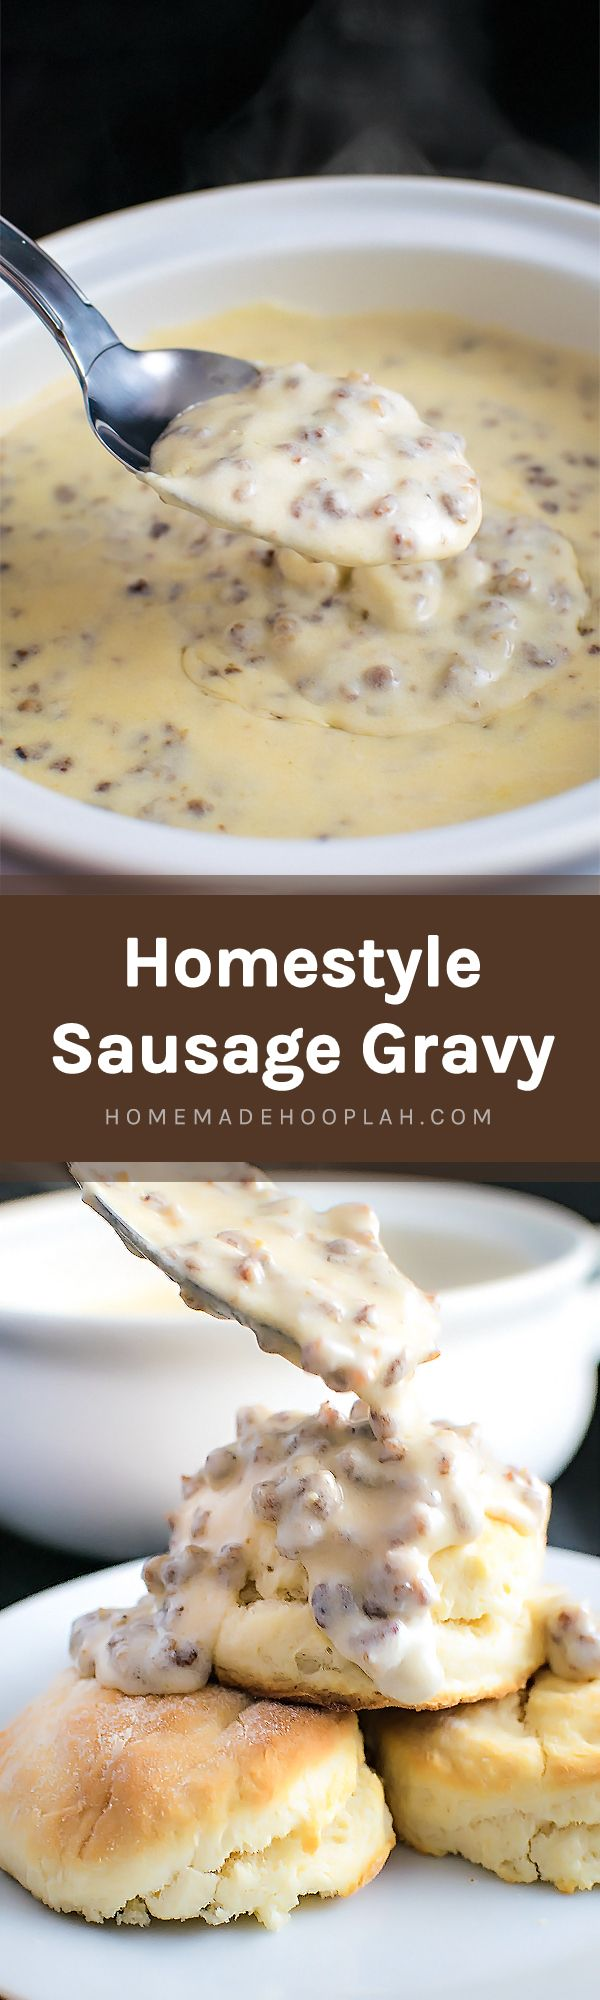 Homestyle Sausage Gravy! Get your comfort food fix with classic #sausage #gravy, perfect for a lazy morning and ready in less than 30 minutes! | @HomemadeHooplah